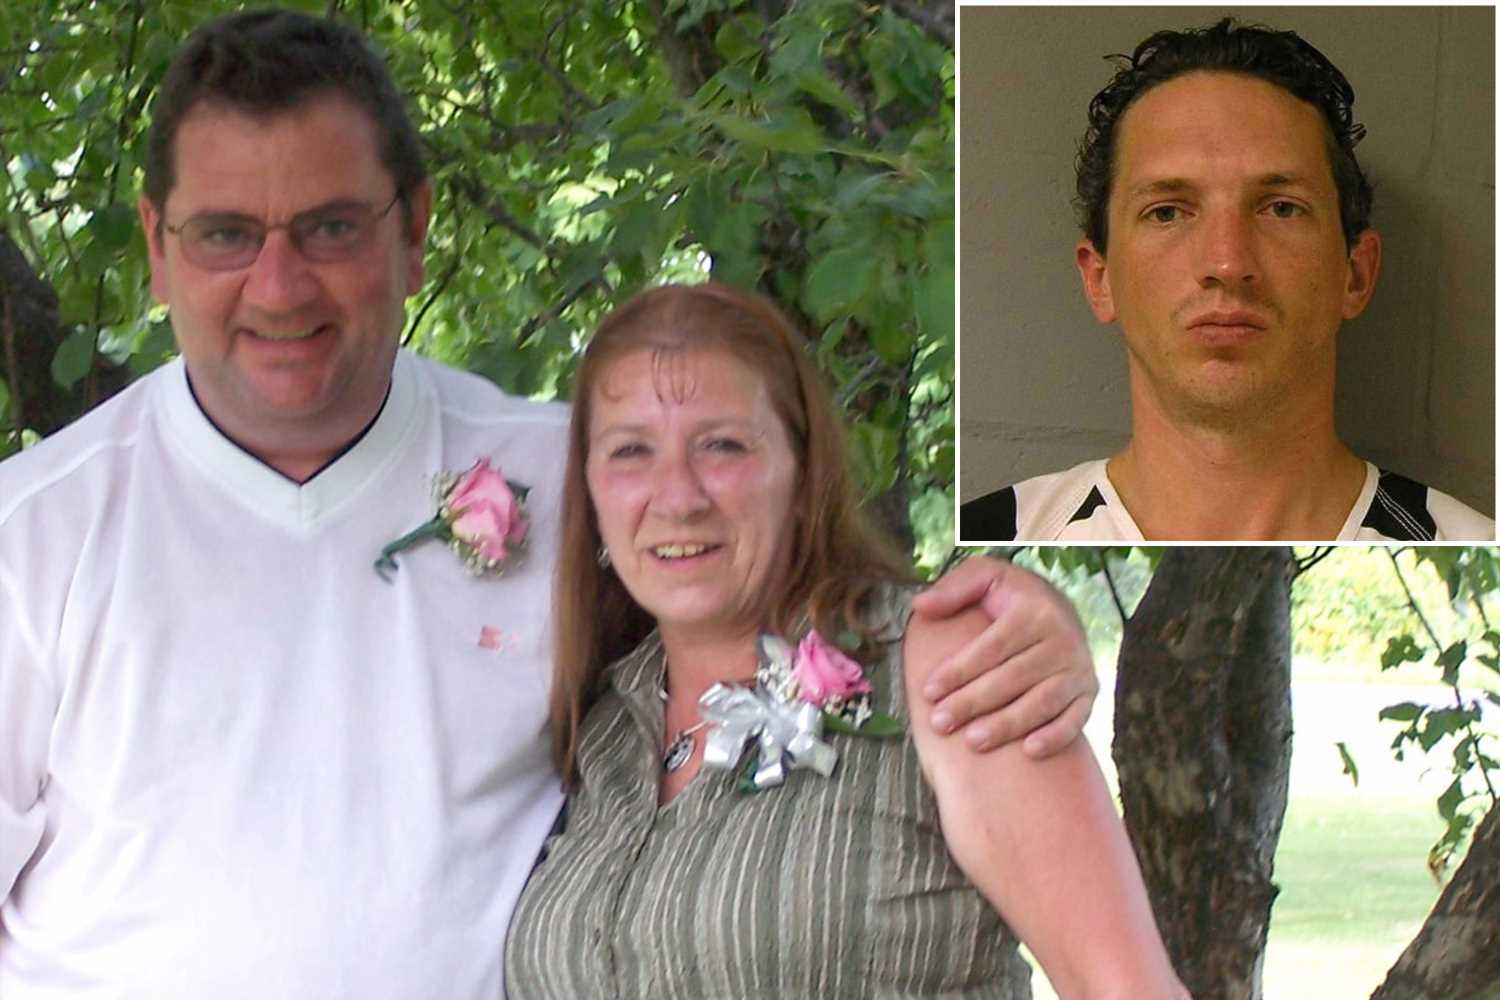 How a Vermont couple ended up in a serial killer's gruesome chain of carnage